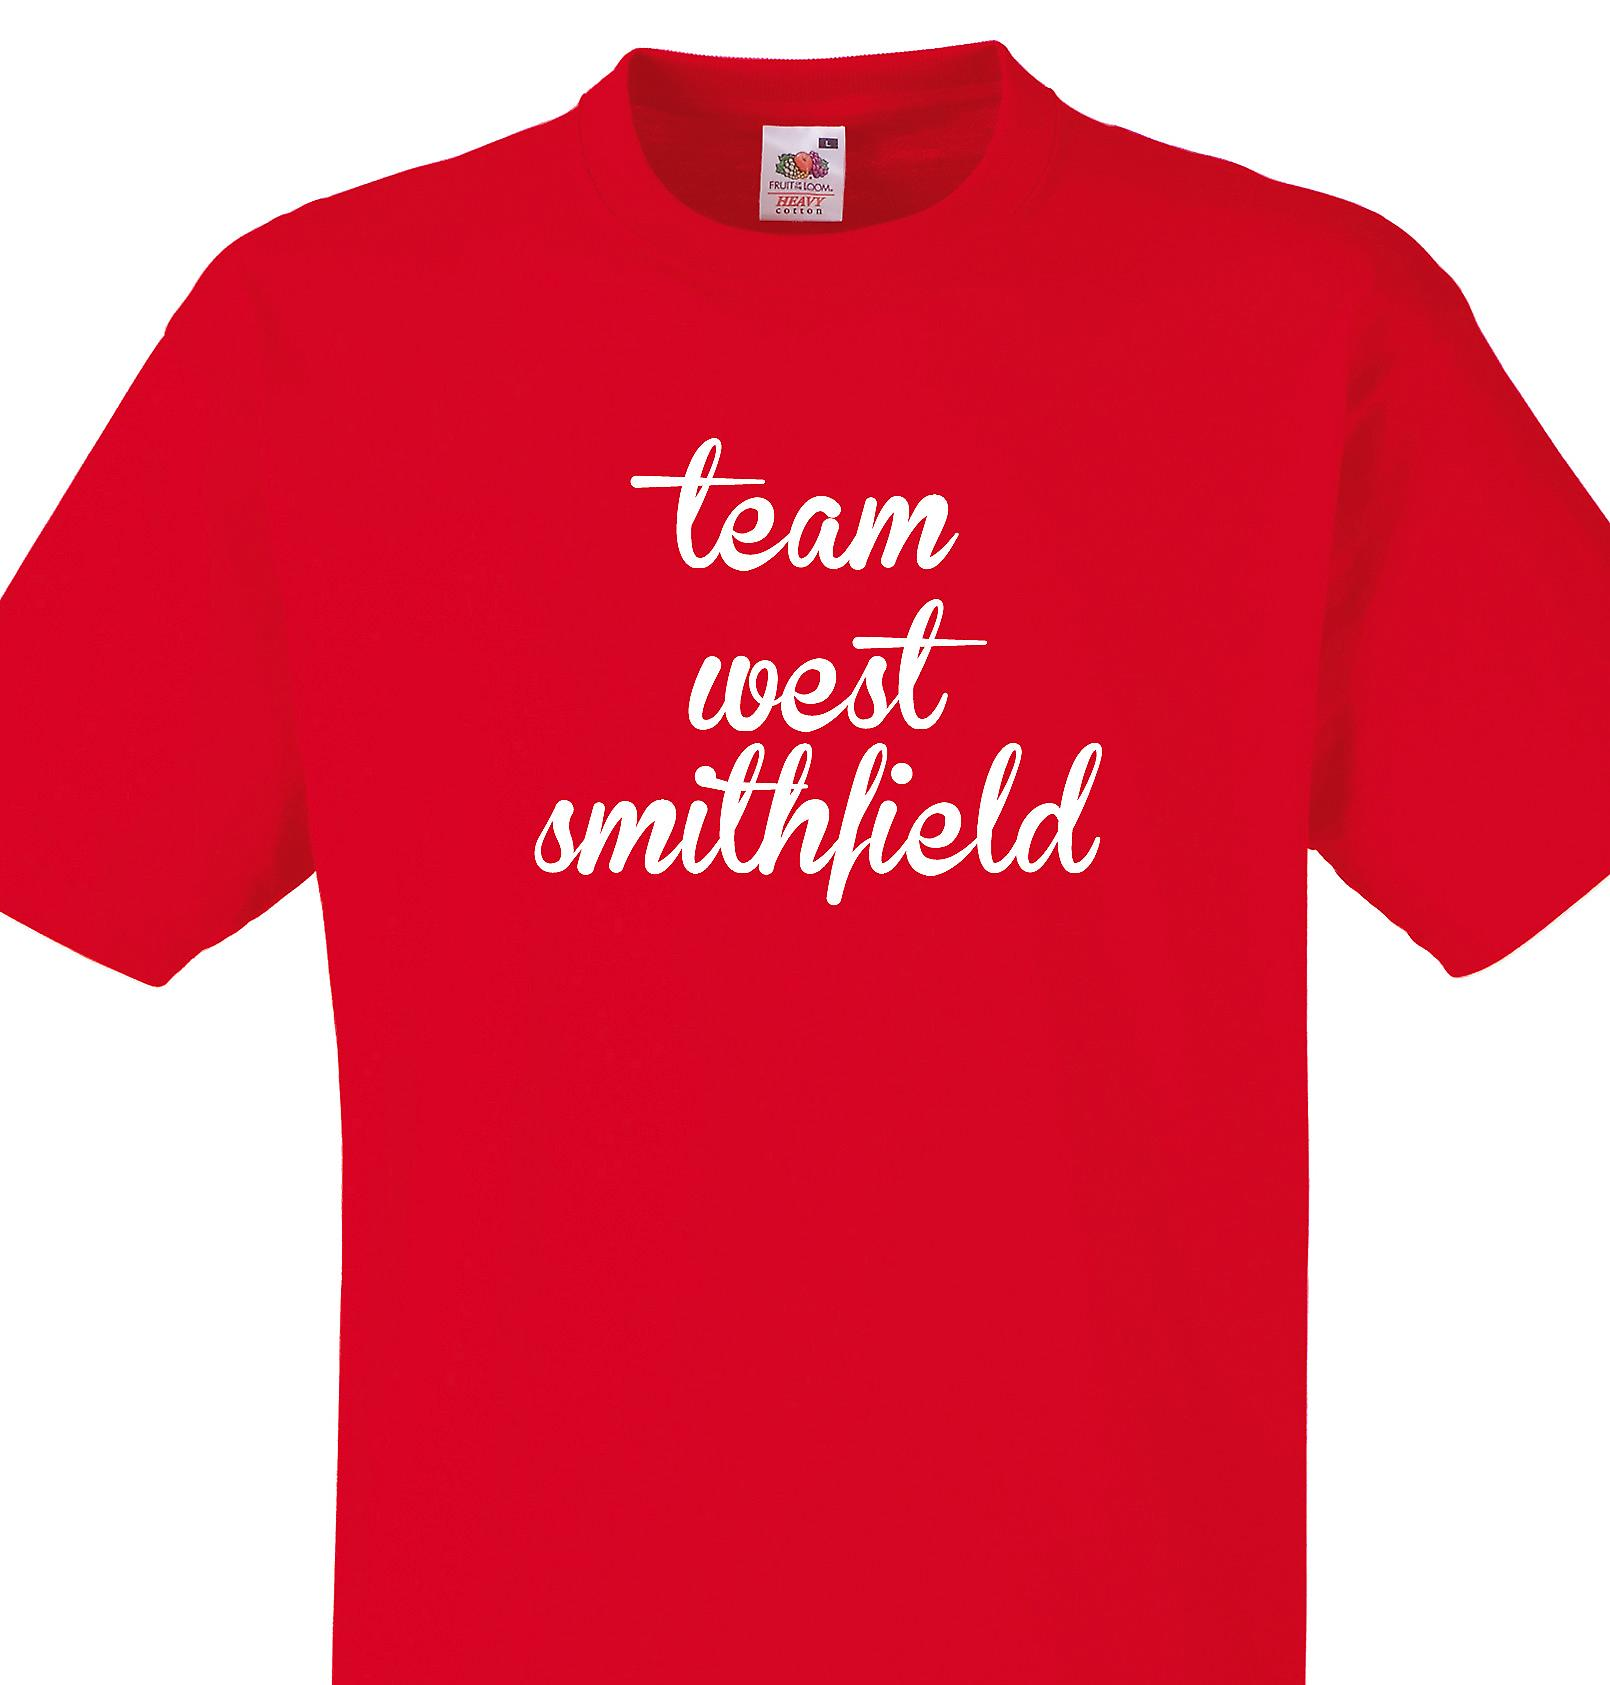 Team West smithfield Red T shirt